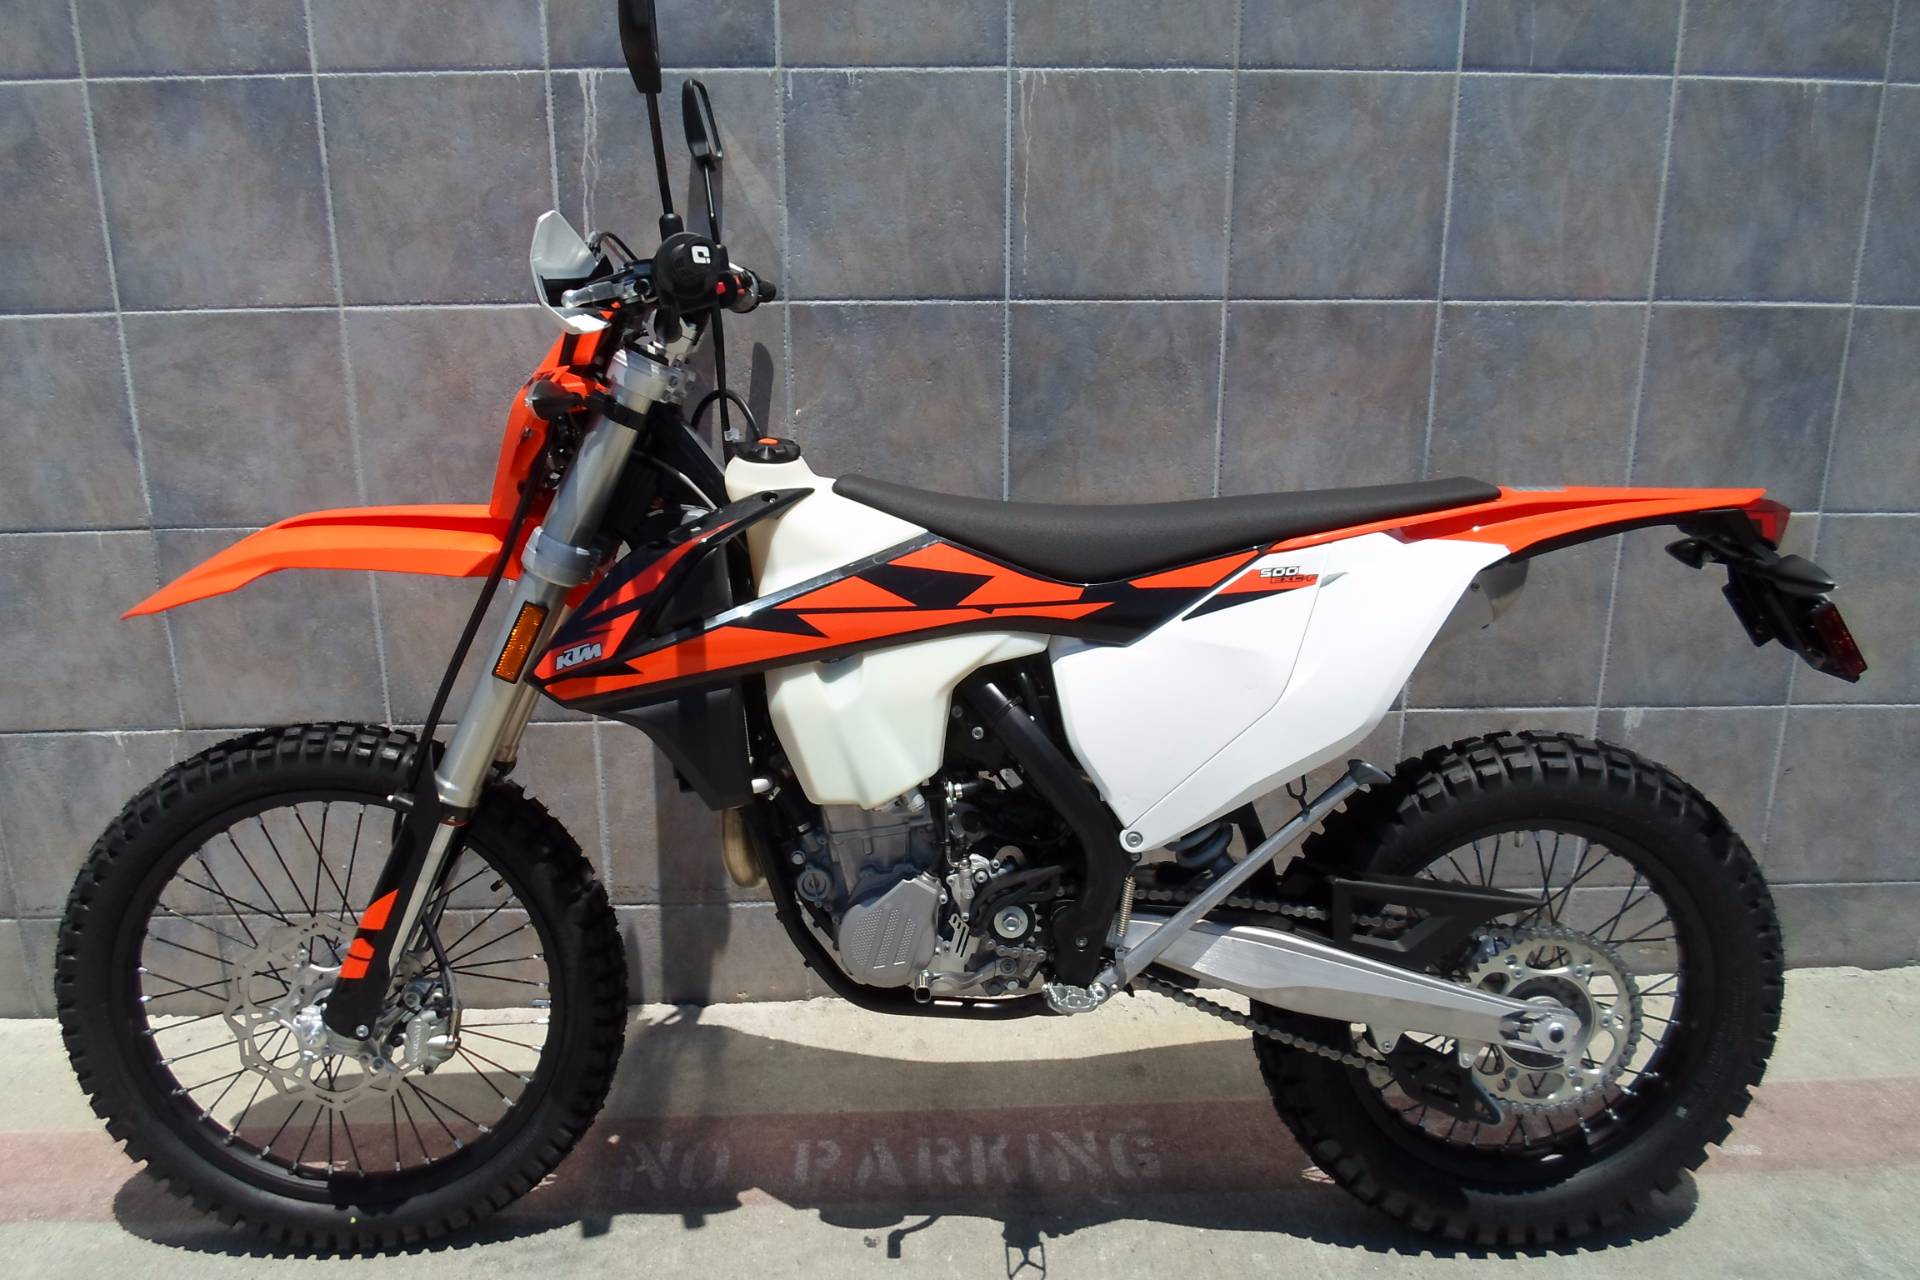 New 2018 KTM 500 EXC-F Motorcycles in San Marcos, CA